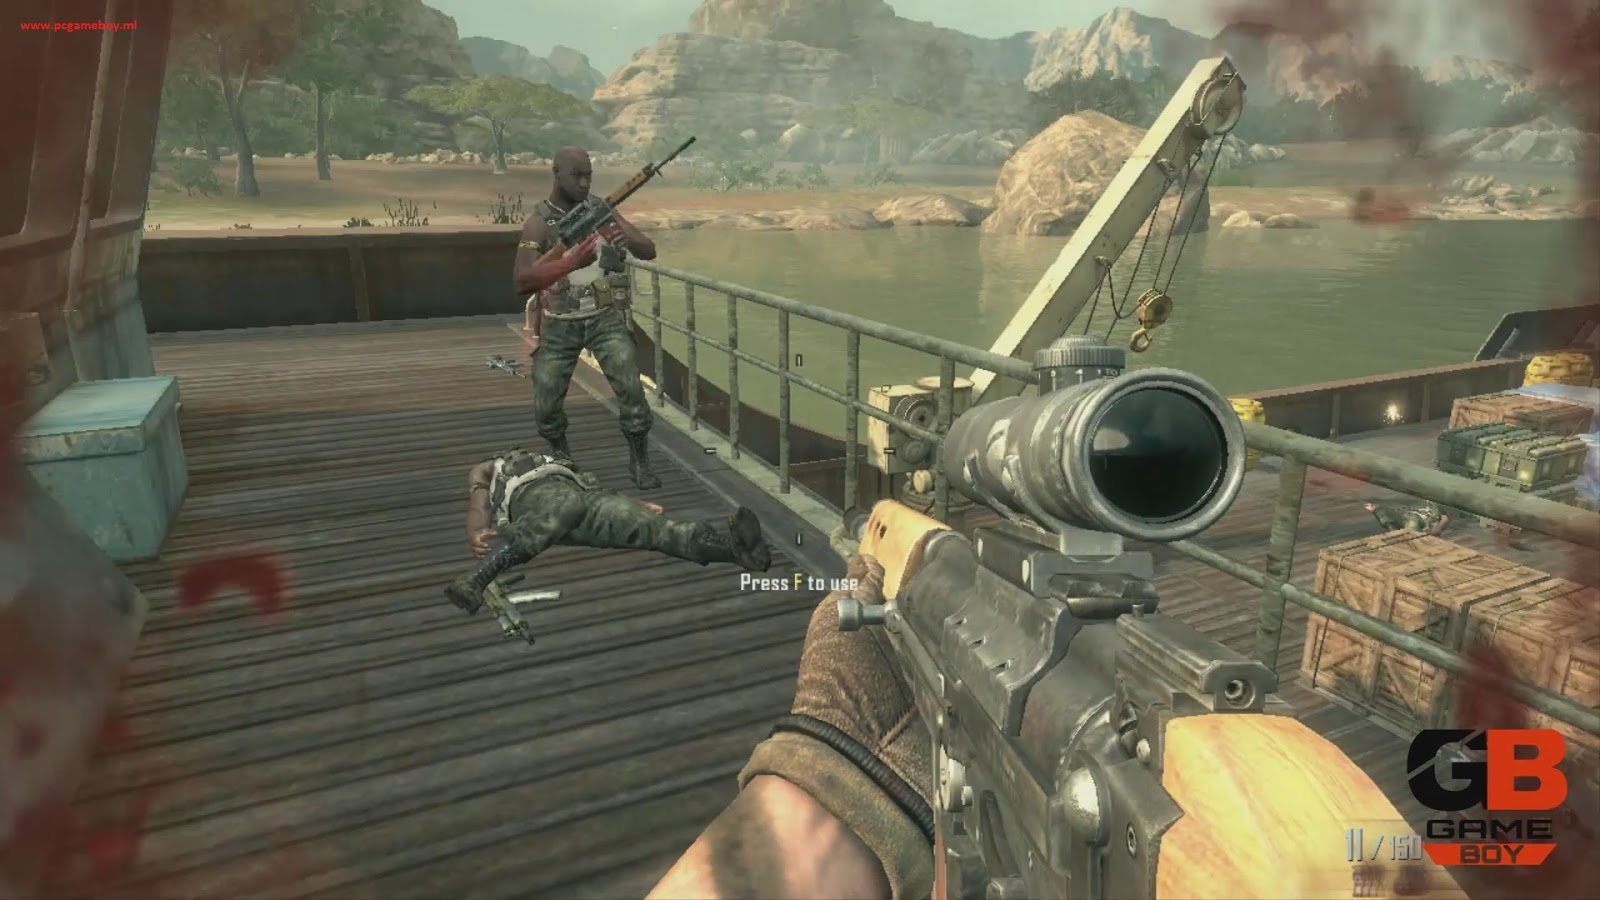 Download call of duty black ops 2 highly compressed in parts